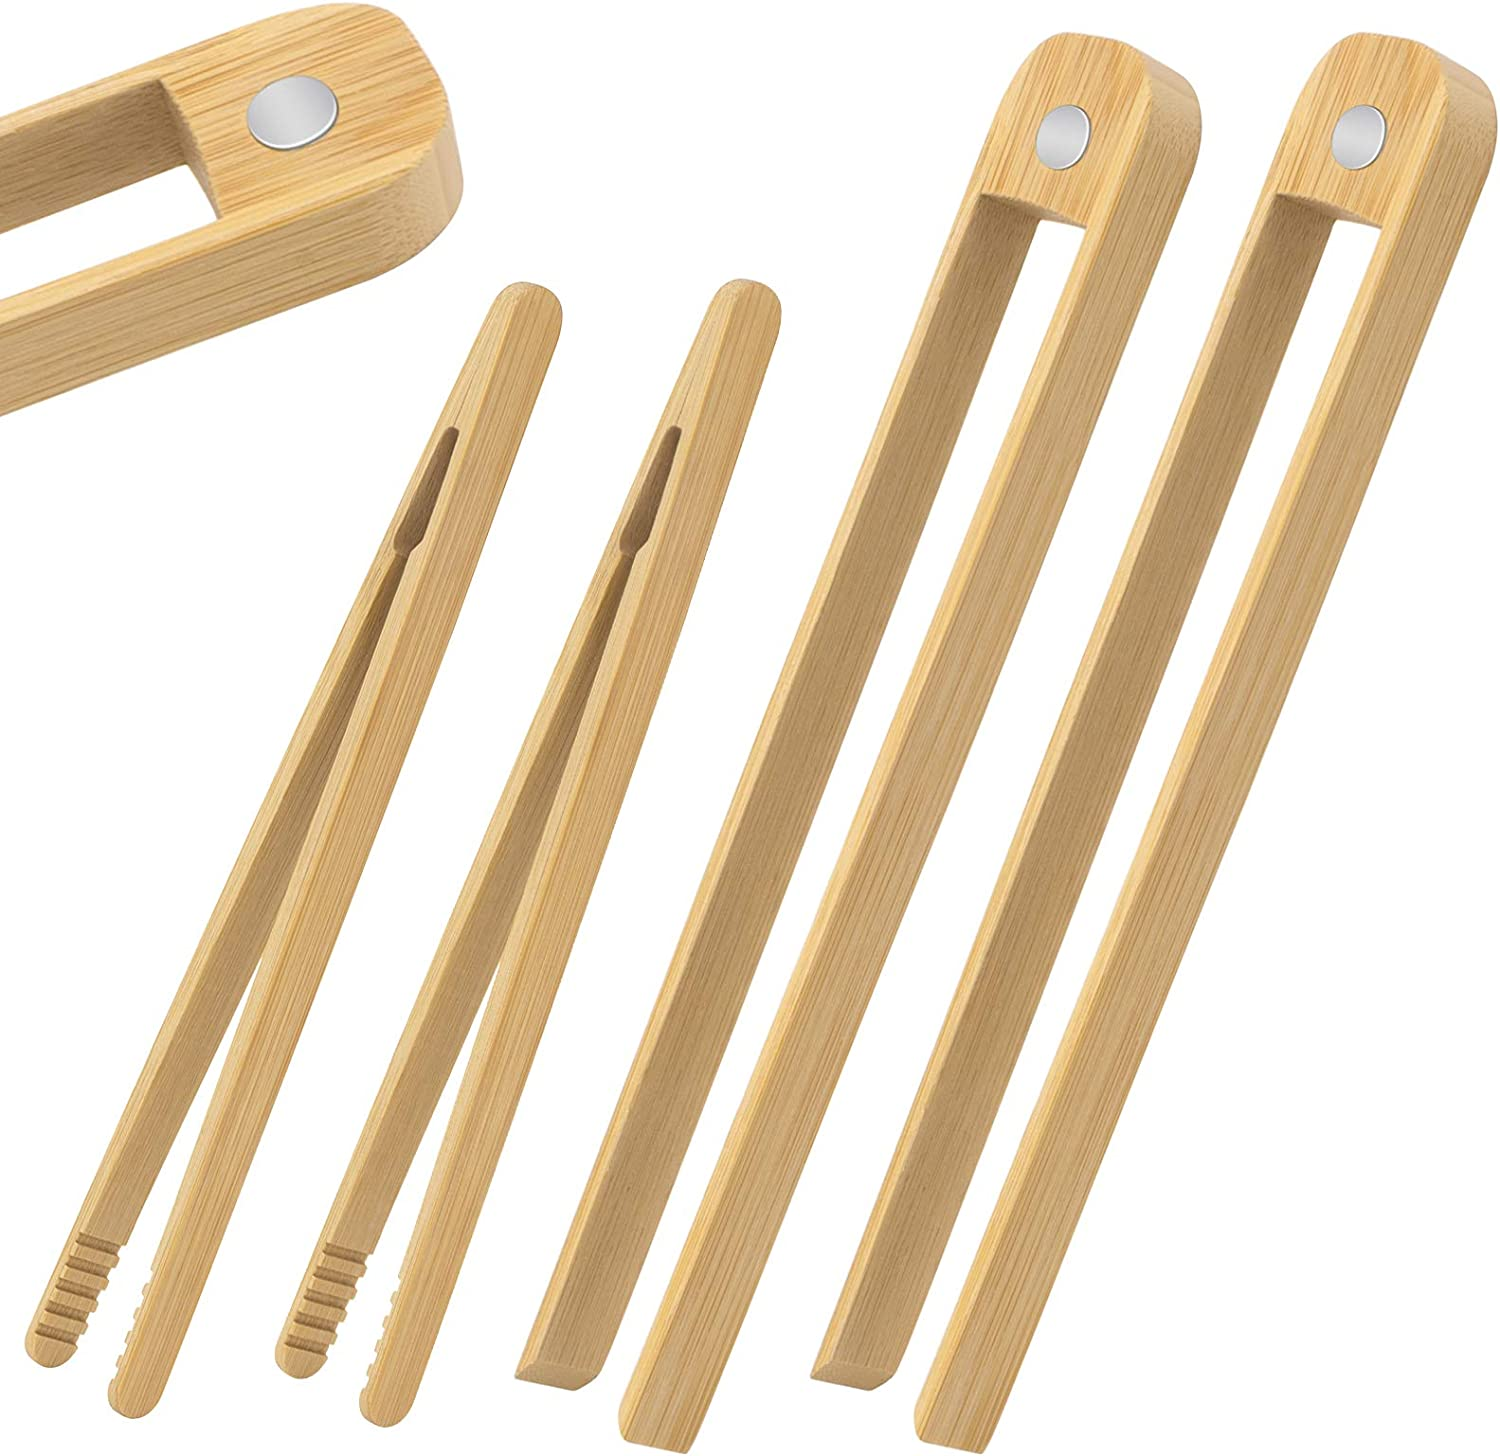 Toaster Tongs-4 Pieces, 2 Pieces 8.7-Inch wooden tongs With Magnet and 2 Pieces 7-Inch bamboo tongs for Toast Bread, Cooking